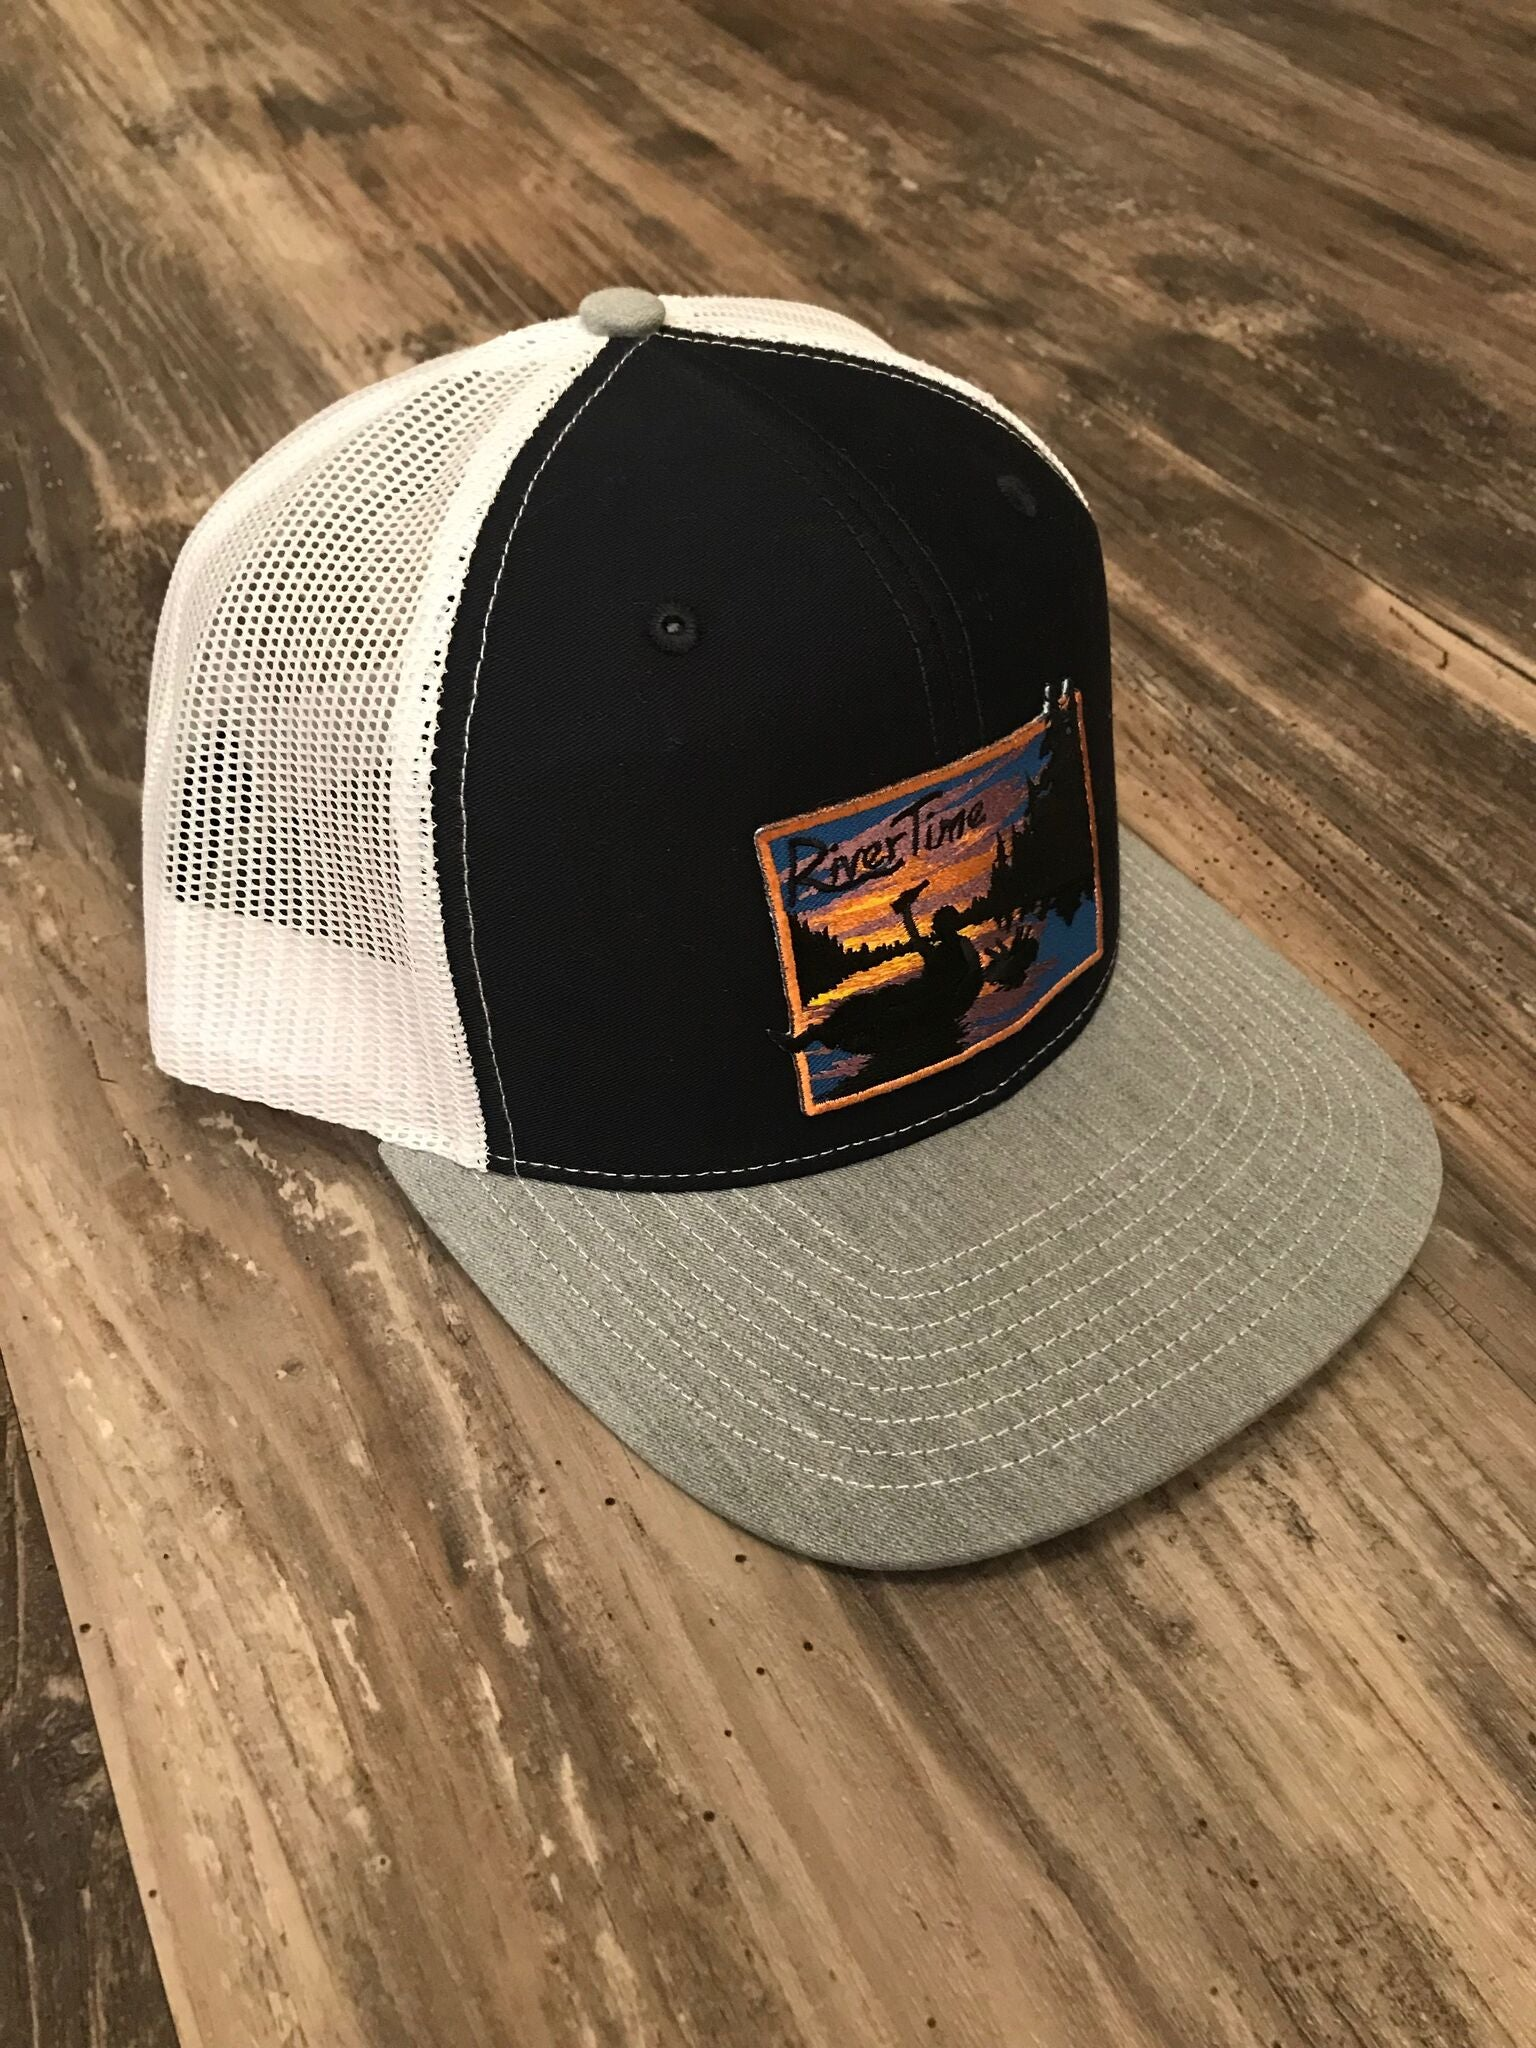 RiverTime Tuber Gray and Navy with White Mesh Richardson Trucker Hat